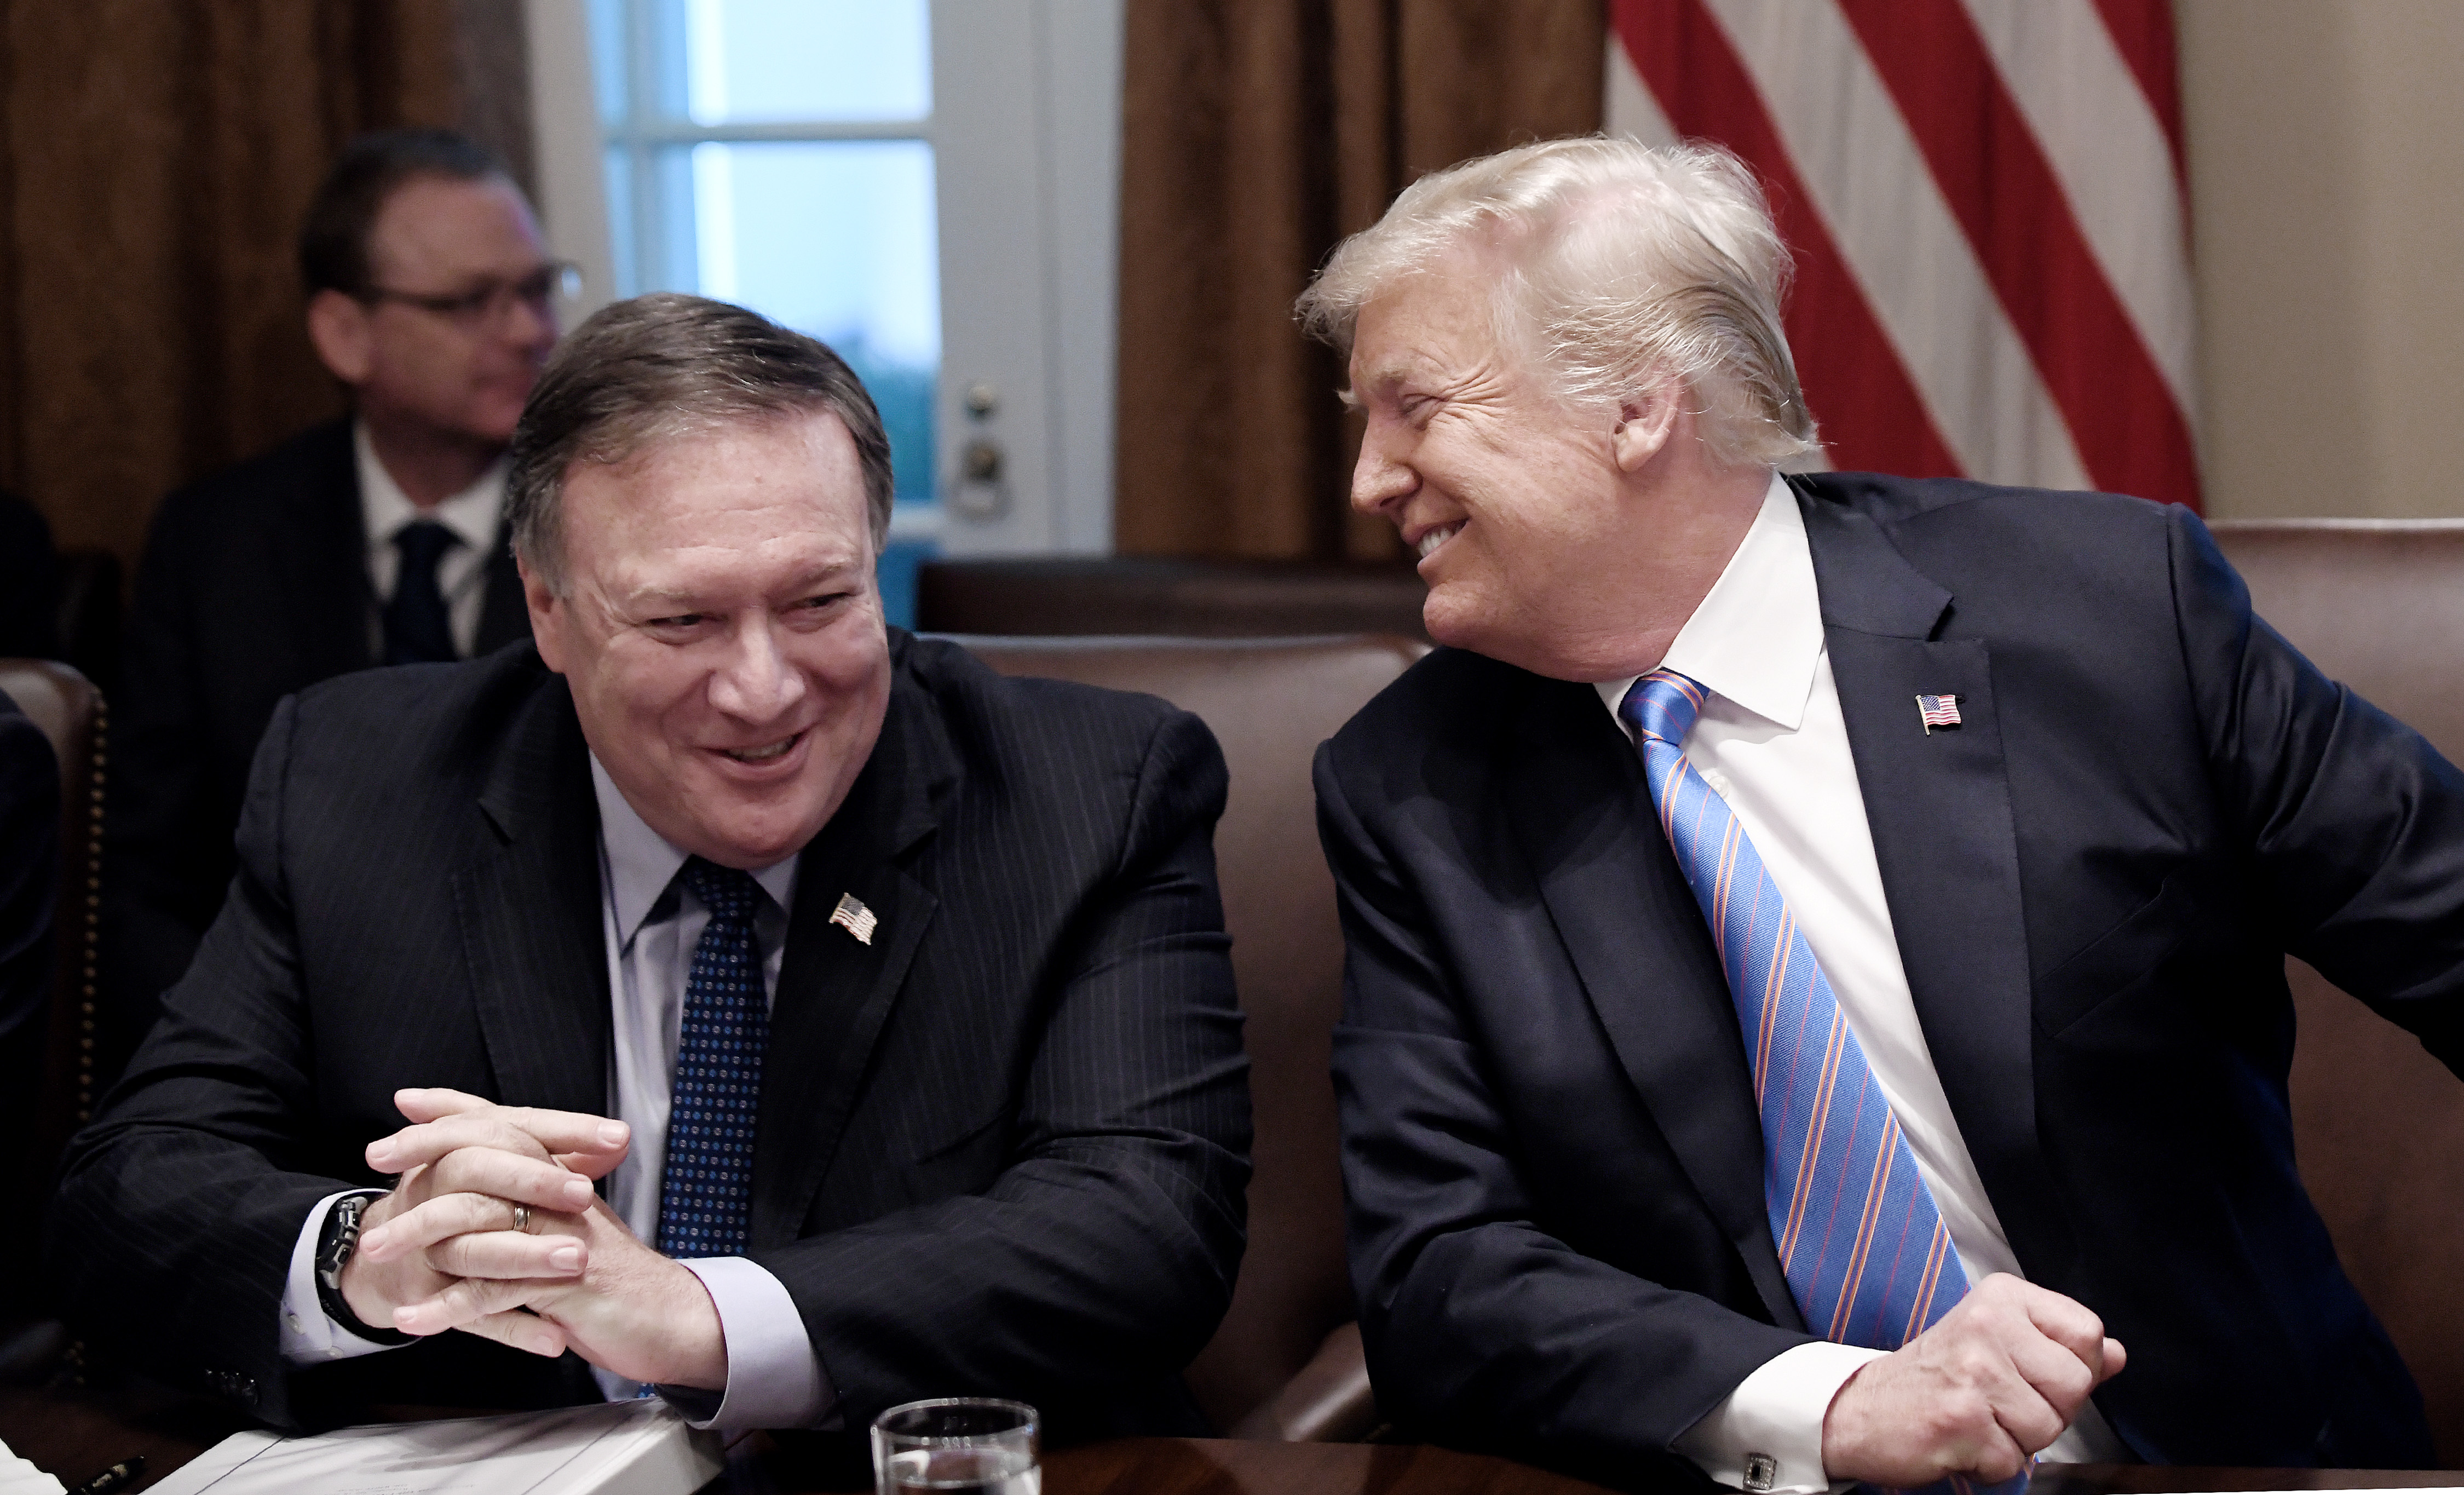 (AFP OUT) Secretary of State Mike Pompeo and President Trump share a laugh during a cabinet meeting with U.S. President Donald Trump in the Cabinet Room of the White House, July 18, 2018 in Washington, DC. (Getty Images)